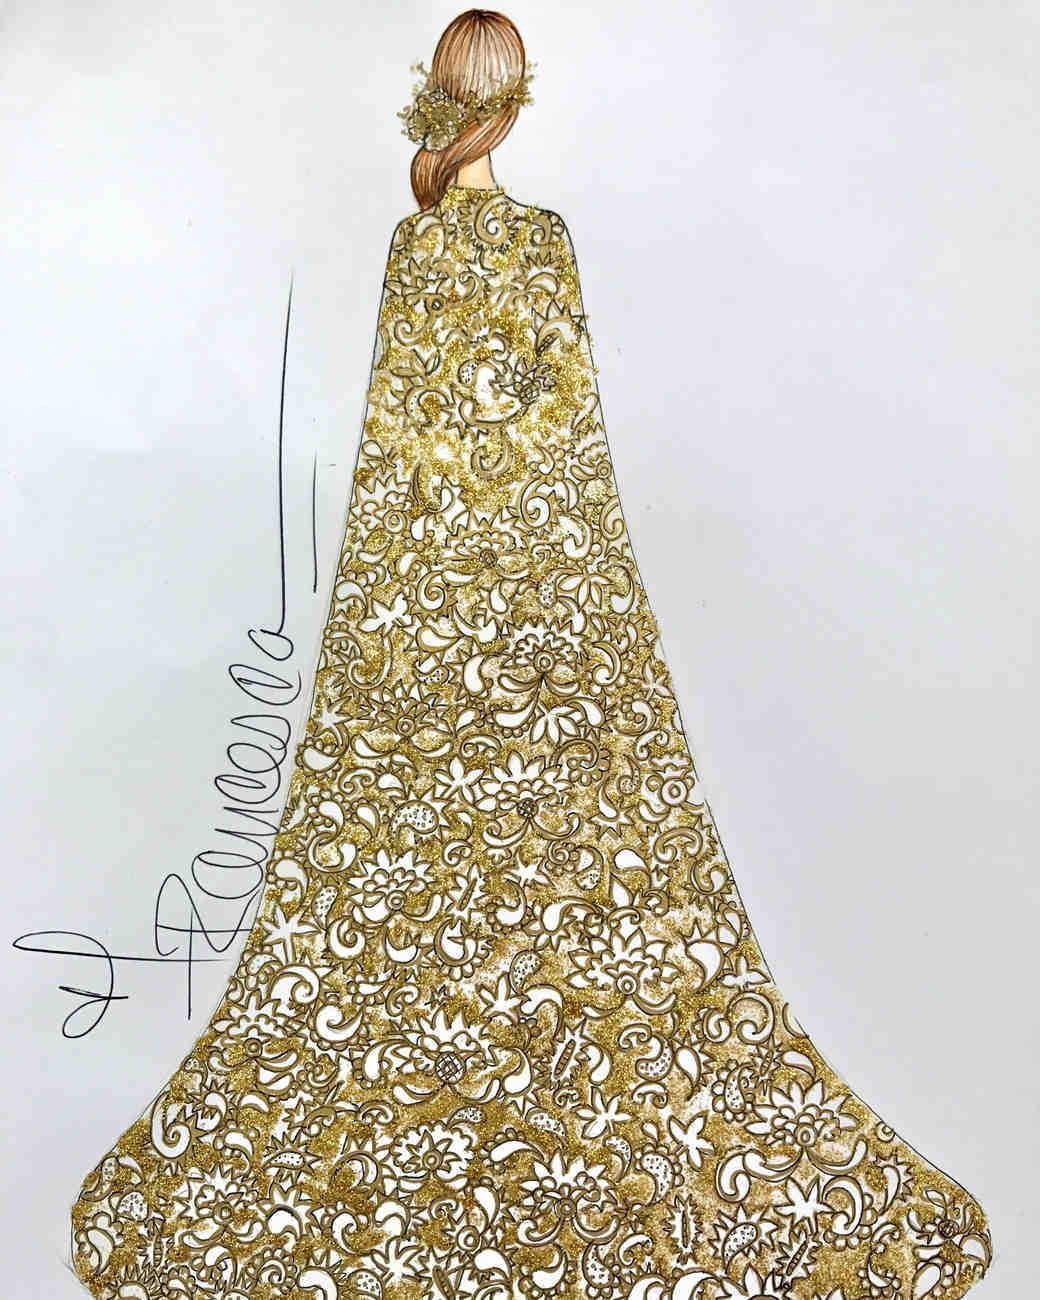 francesca miranda wedding dress sketch